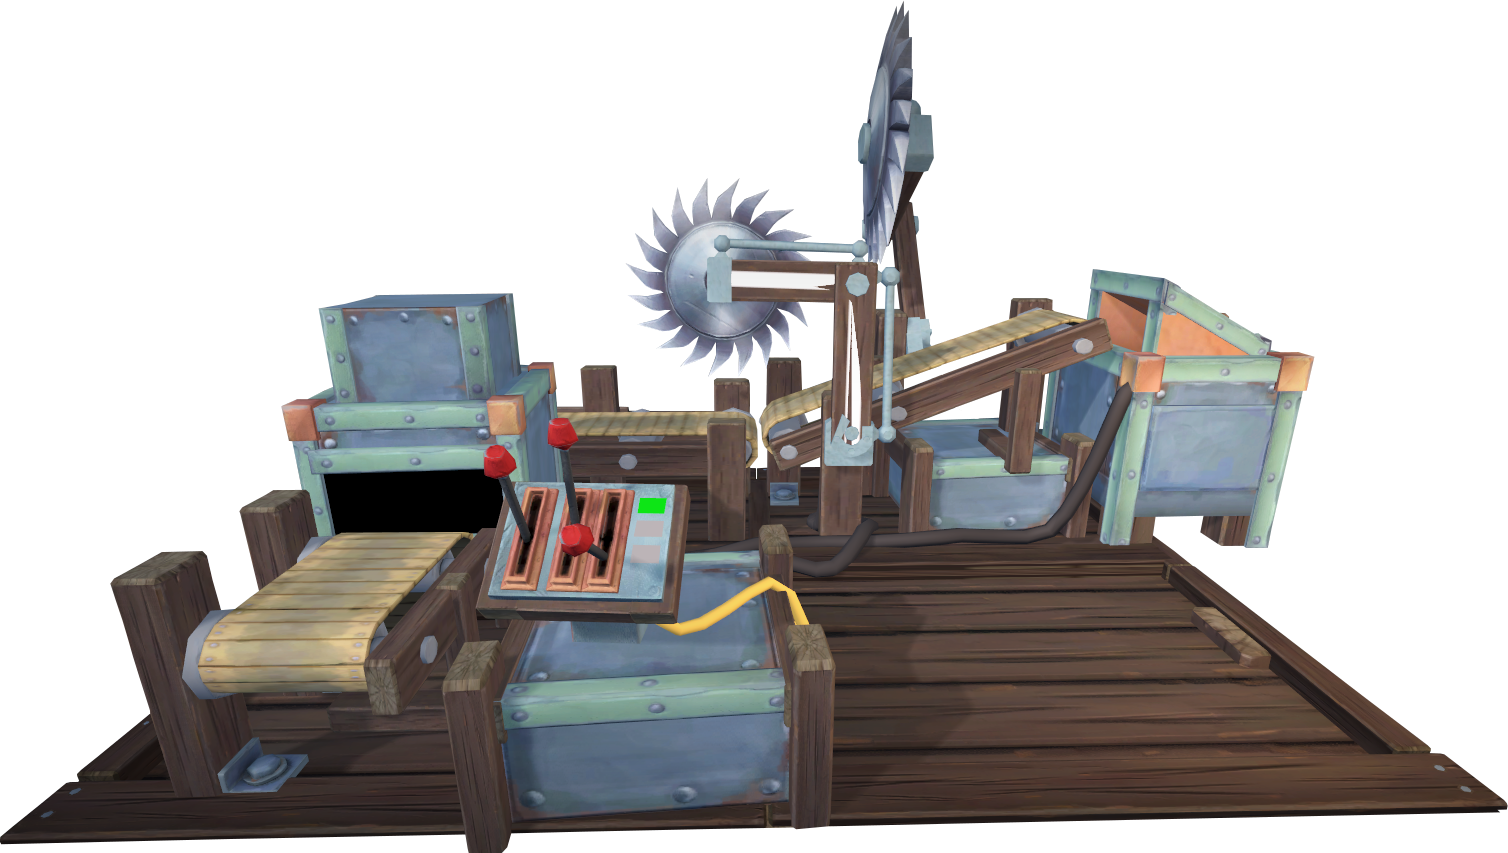 Plank maker machine runescape wiki fandom powered by wikia the plank maker is a machine that can be built in the invention guild basement at level 99 invention it automatically converts logs into planks malvernweather Choice Image